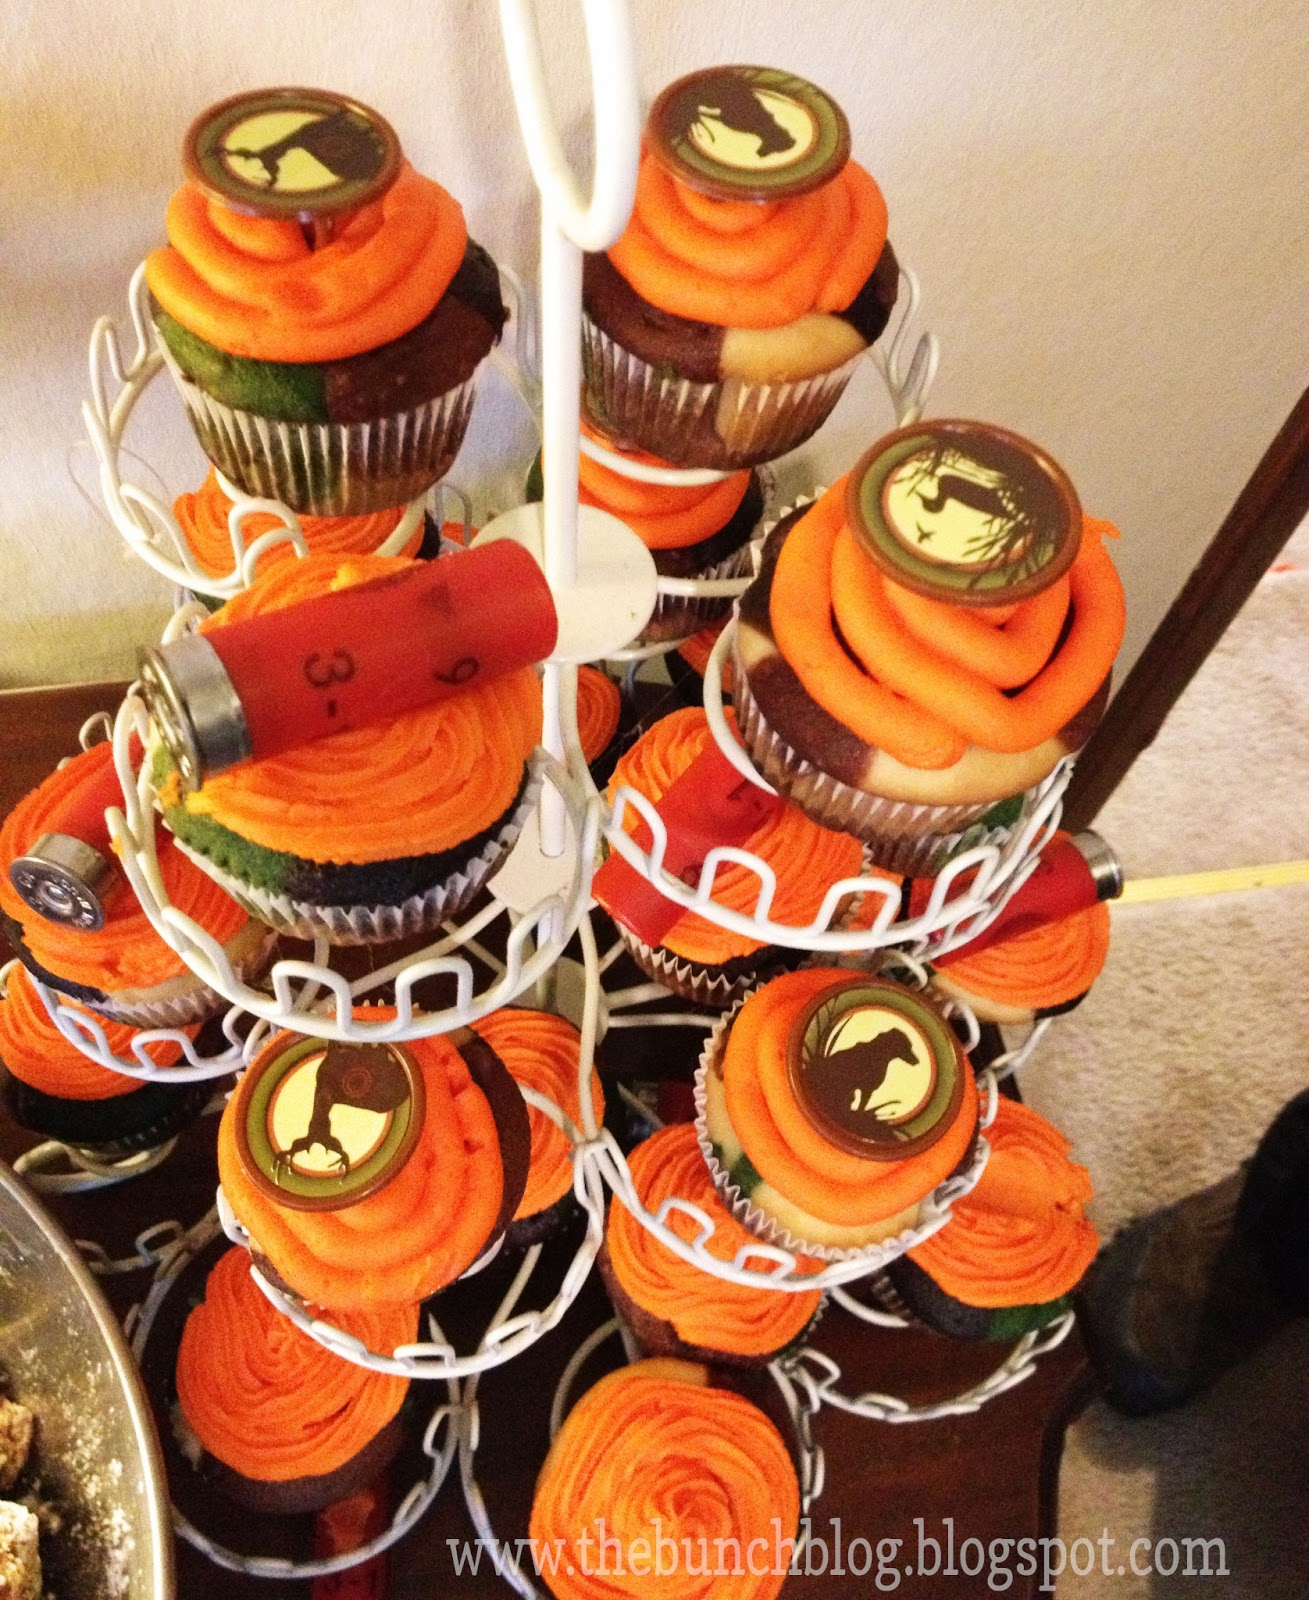 Baby shower cakes baby shower cupcake cake ideas boy - The Bunch Handcrafted Stylishly Hunting Themed Birthday